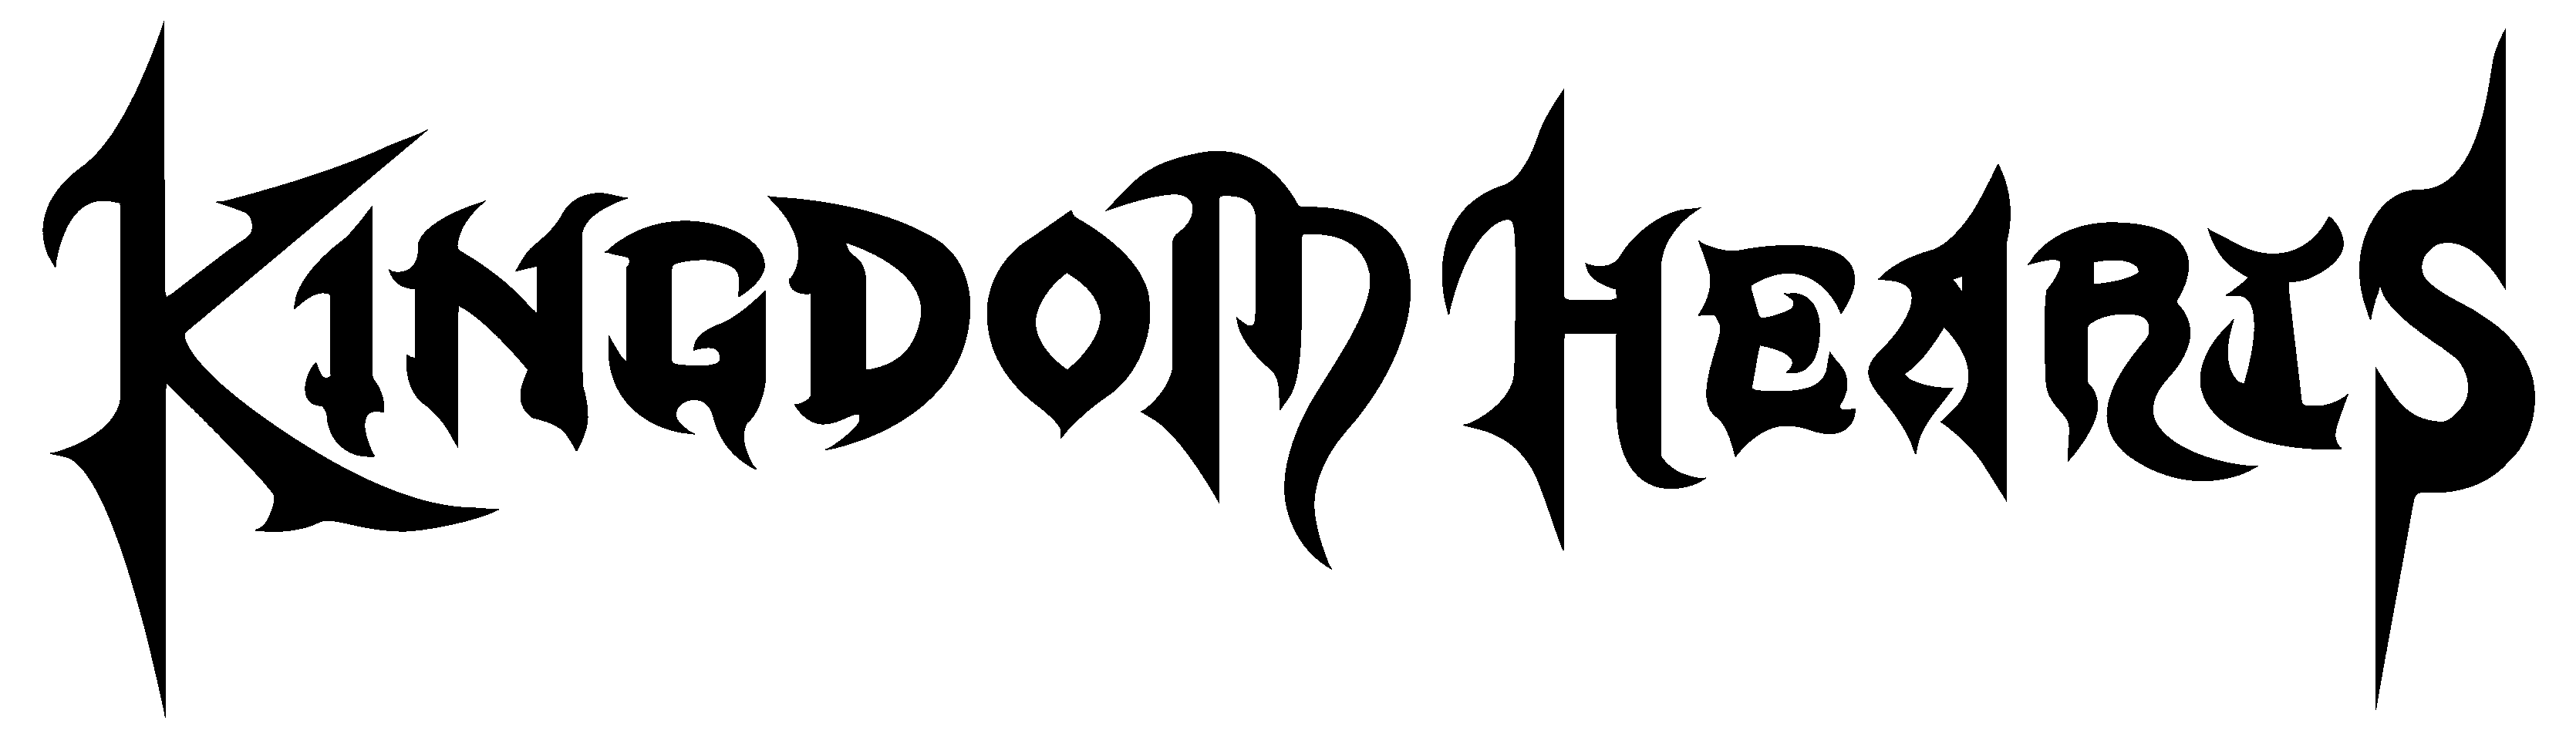 Kingdom hearts text png. File wordmark the fourth